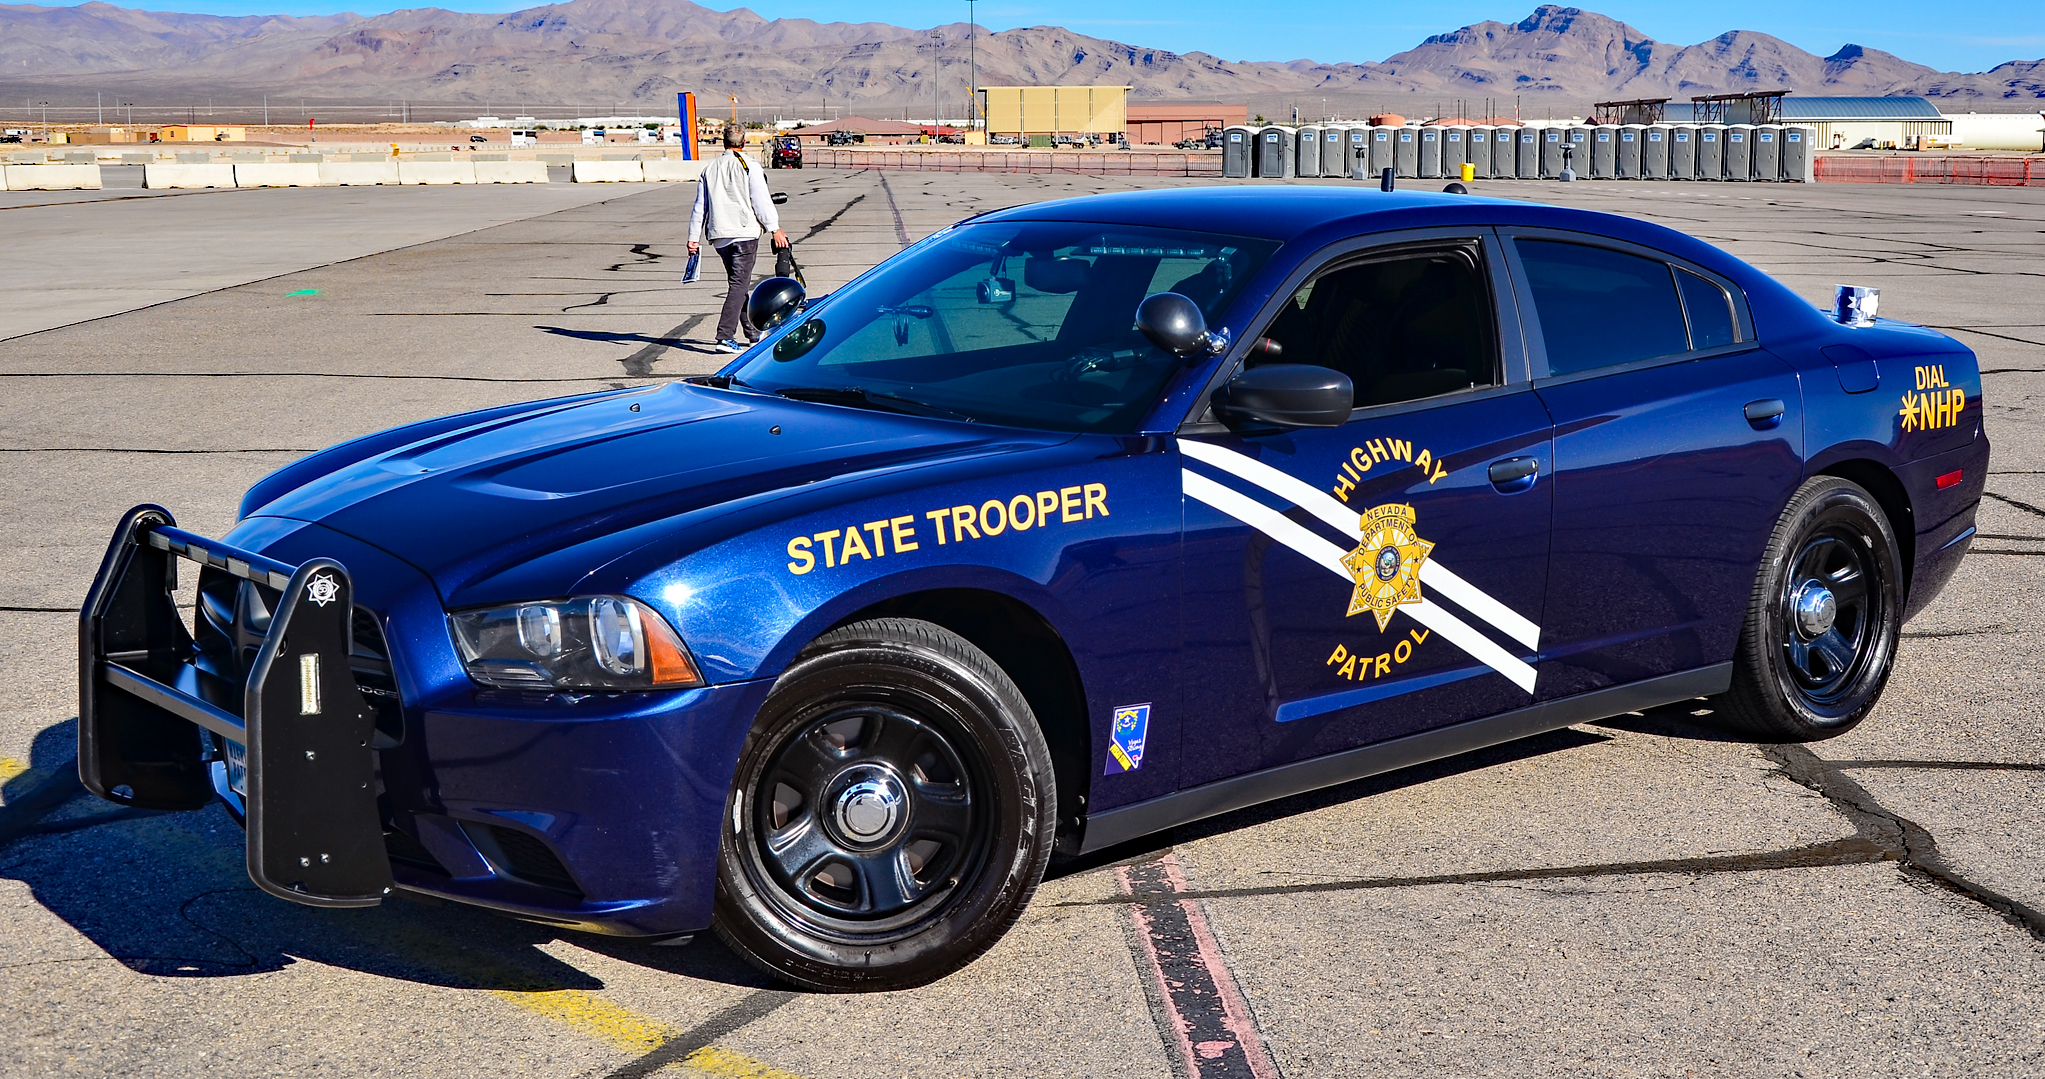 CWH is the Police Written Exam used by the Nevada State Troopers